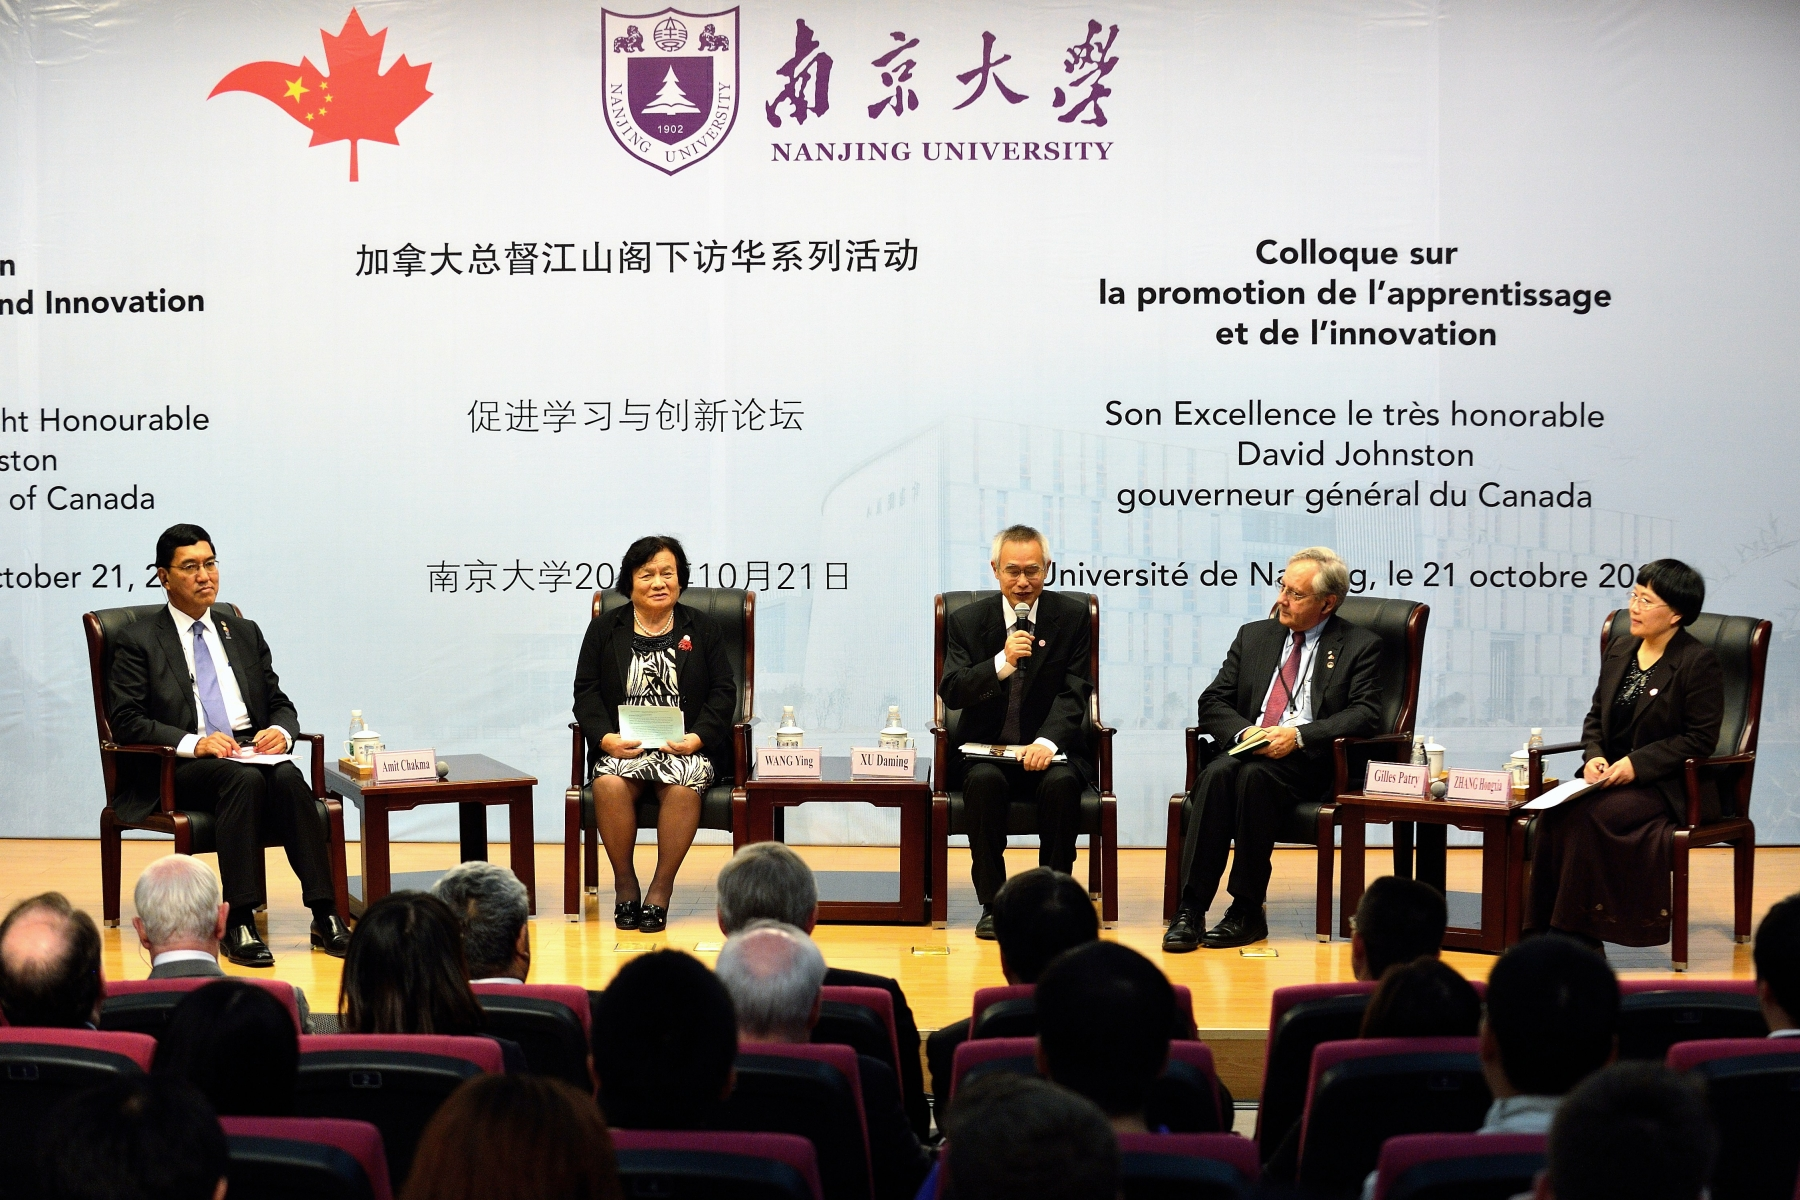 The speech was followed by a discussion with Canadian and Chinese panellists and a question-and-answer session with students.